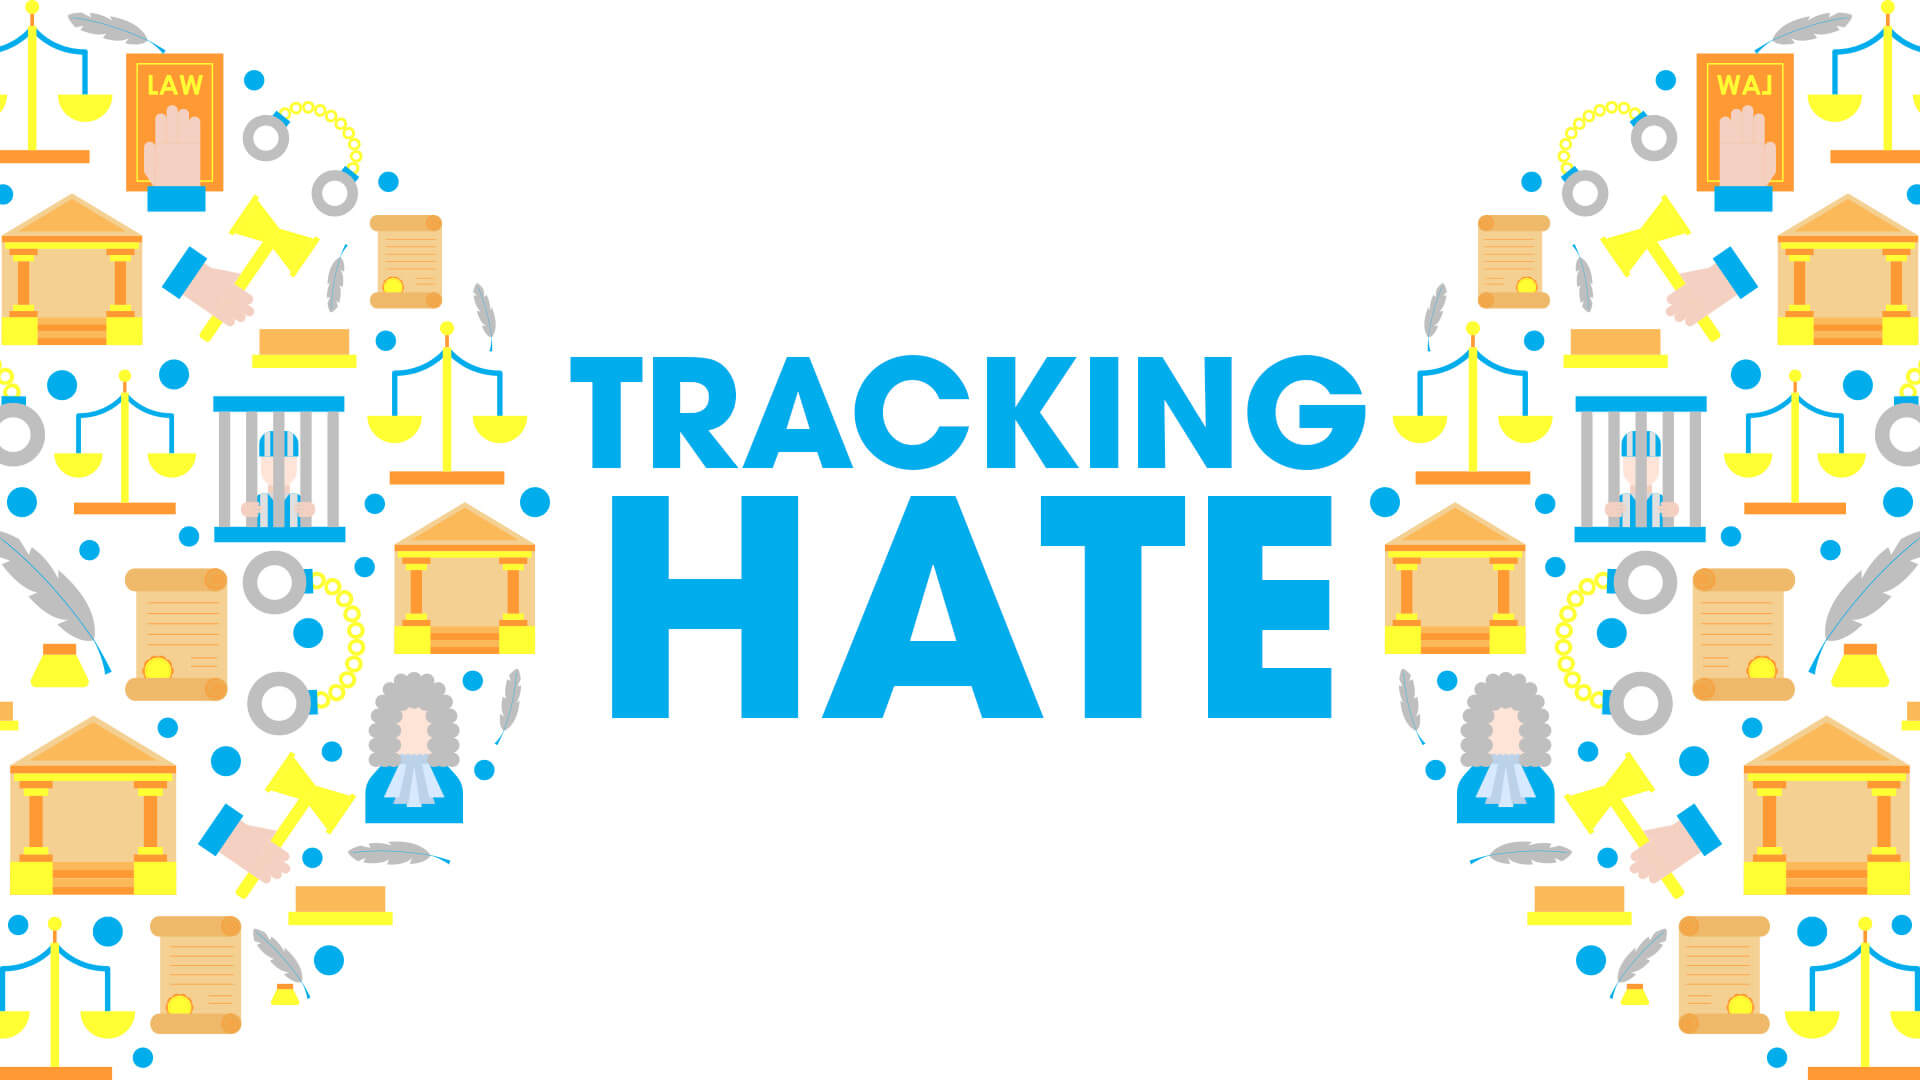 Tracking Hate Crimes